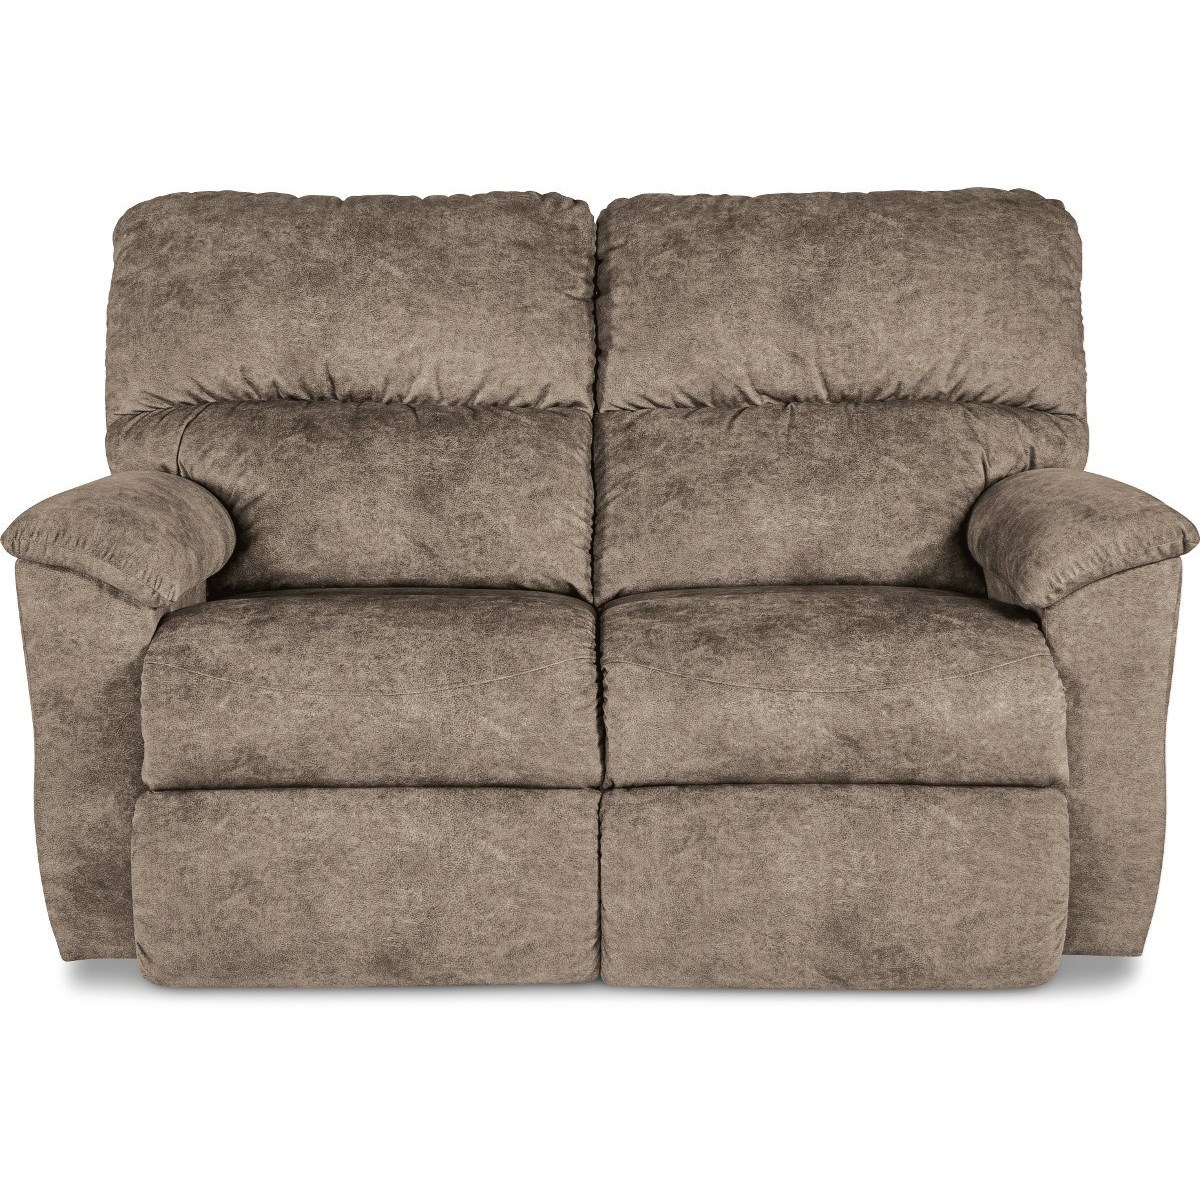 Full Reclining Loveseat